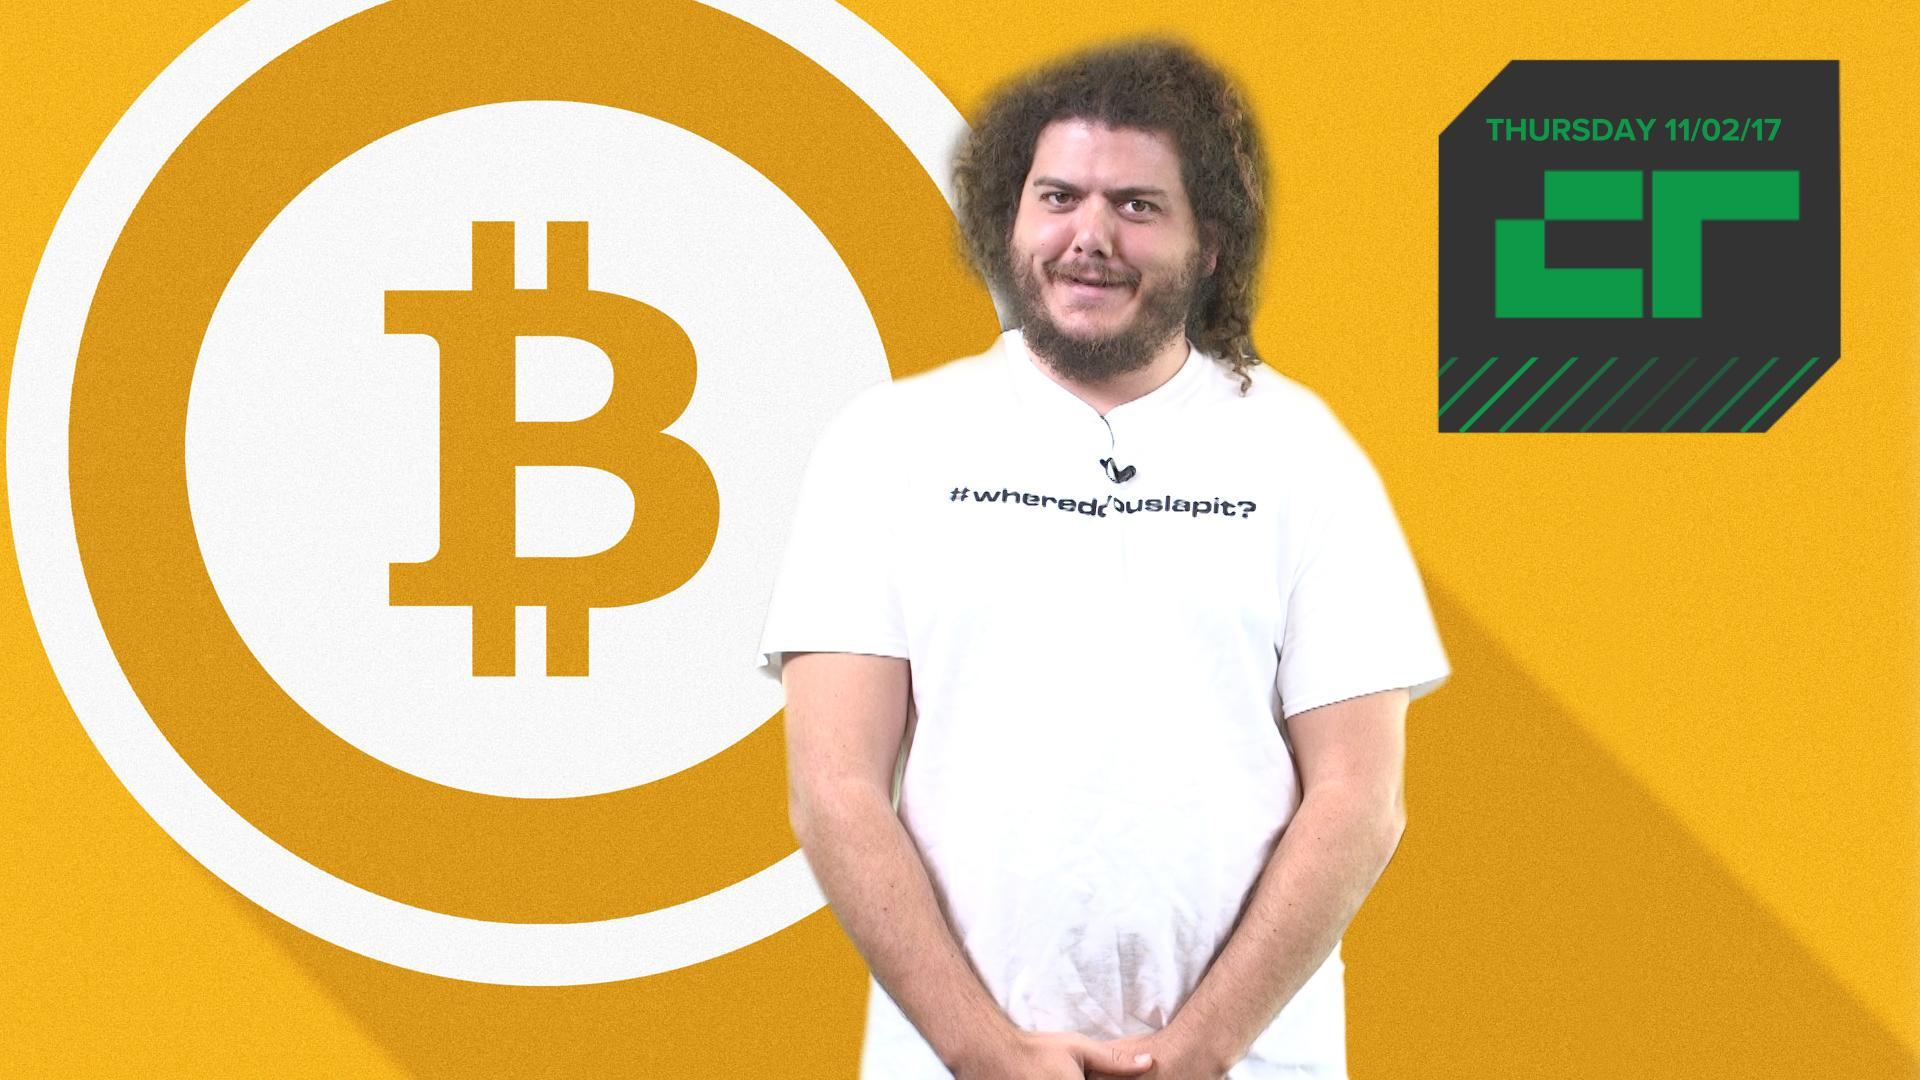 Bitcoin Passes $7,000... Oh My! | Crunch Report